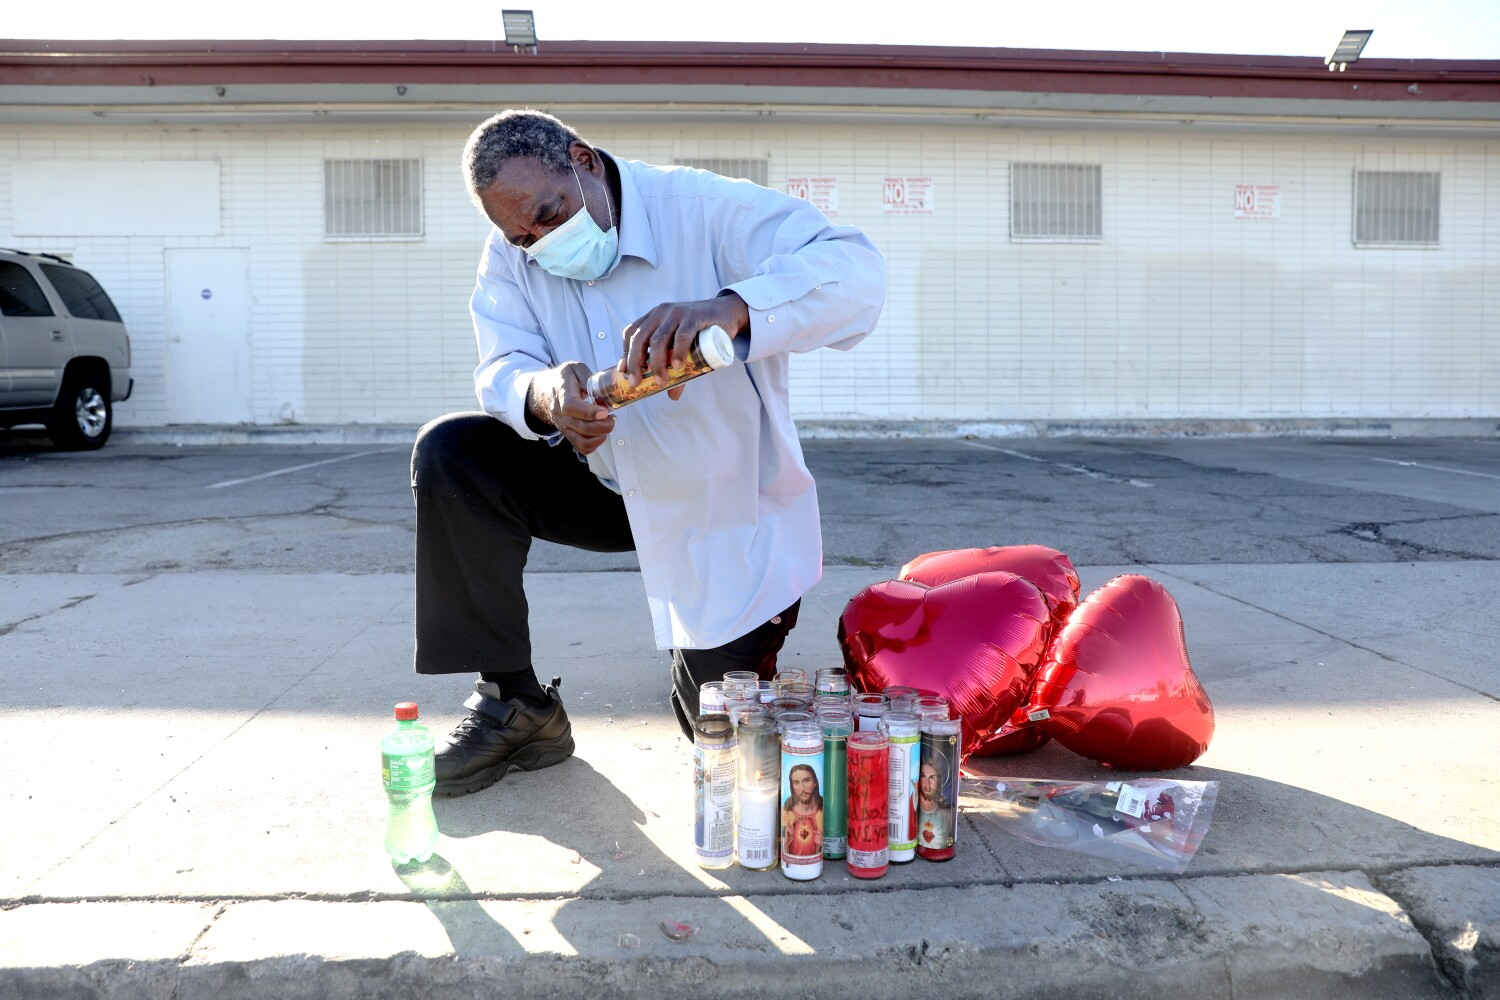 Compton pastor would be first to forgive his killer, family says